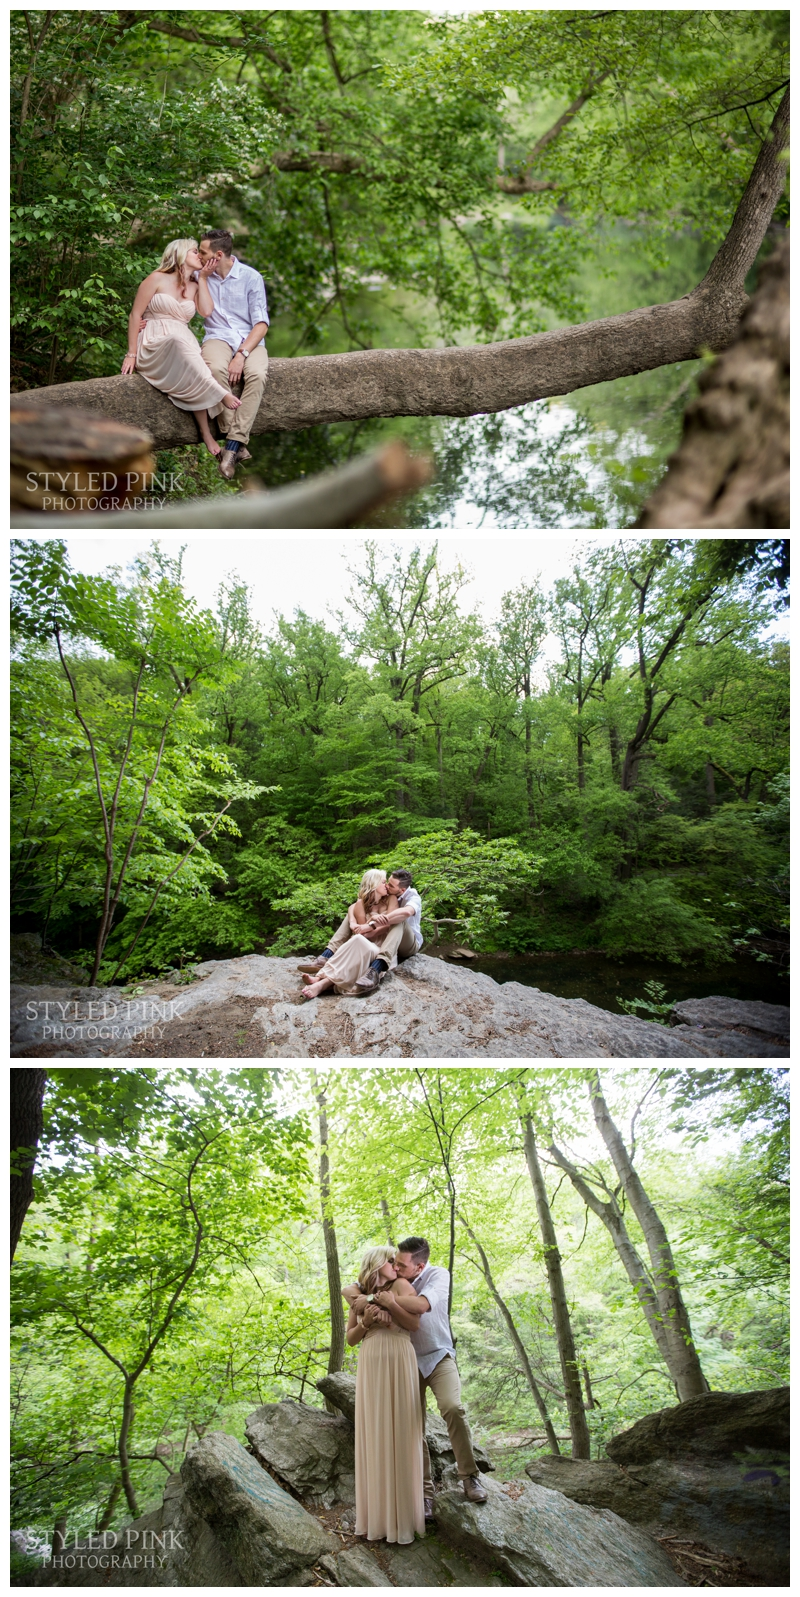 Deana was in HEELS- yes, heels at Wissahickon Trail. Climbing rocks, sitting on the edge of a steep hill, and also sitting on a fallen over tree that is literally just above the water. SO adventurous- I love it.